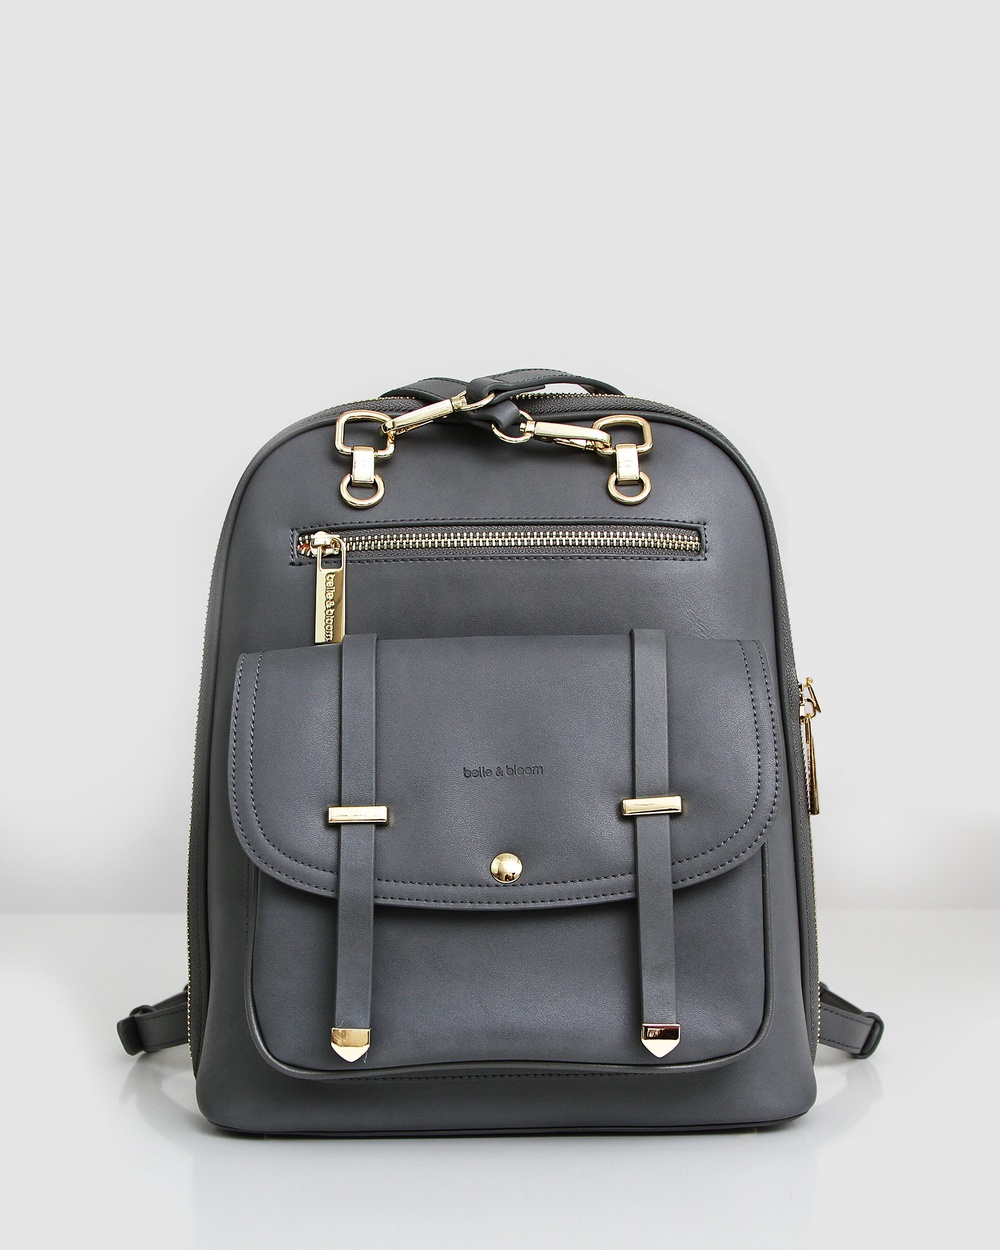 Belle & Bloom 5th Ave Leather Backpack Backpacks Grey Leather bags Australia